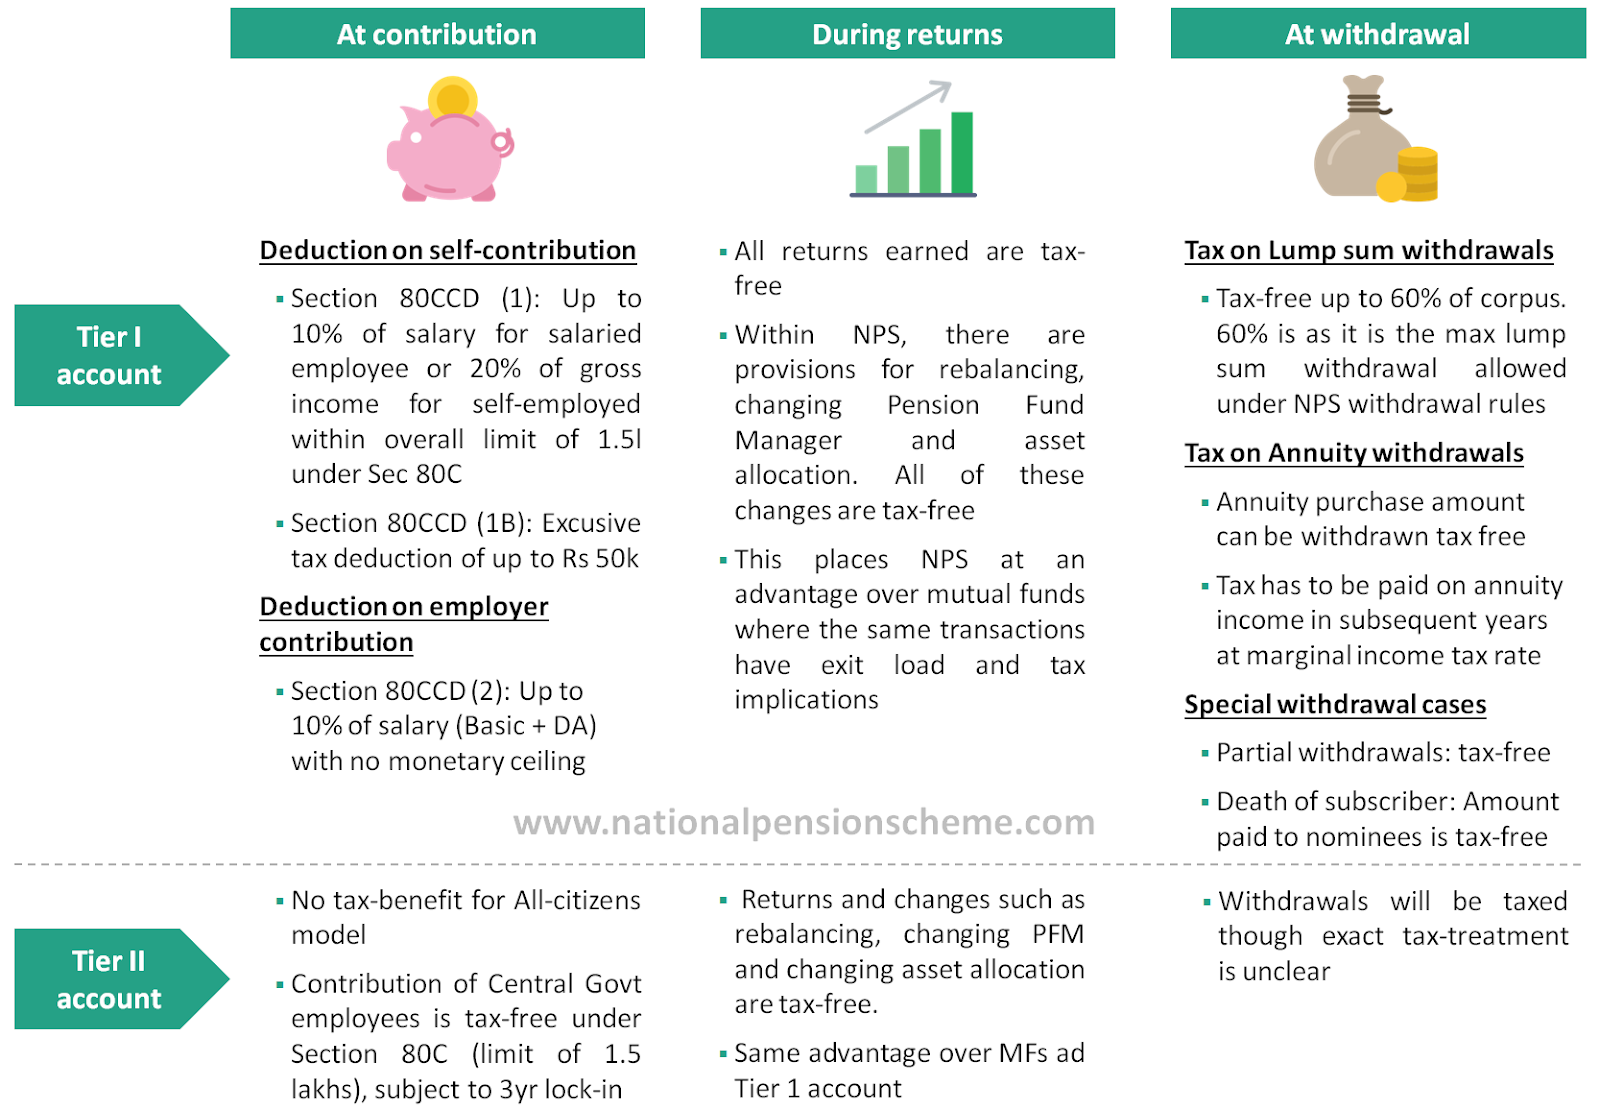 NPS tax rules and EEE tax benefit explained in one image